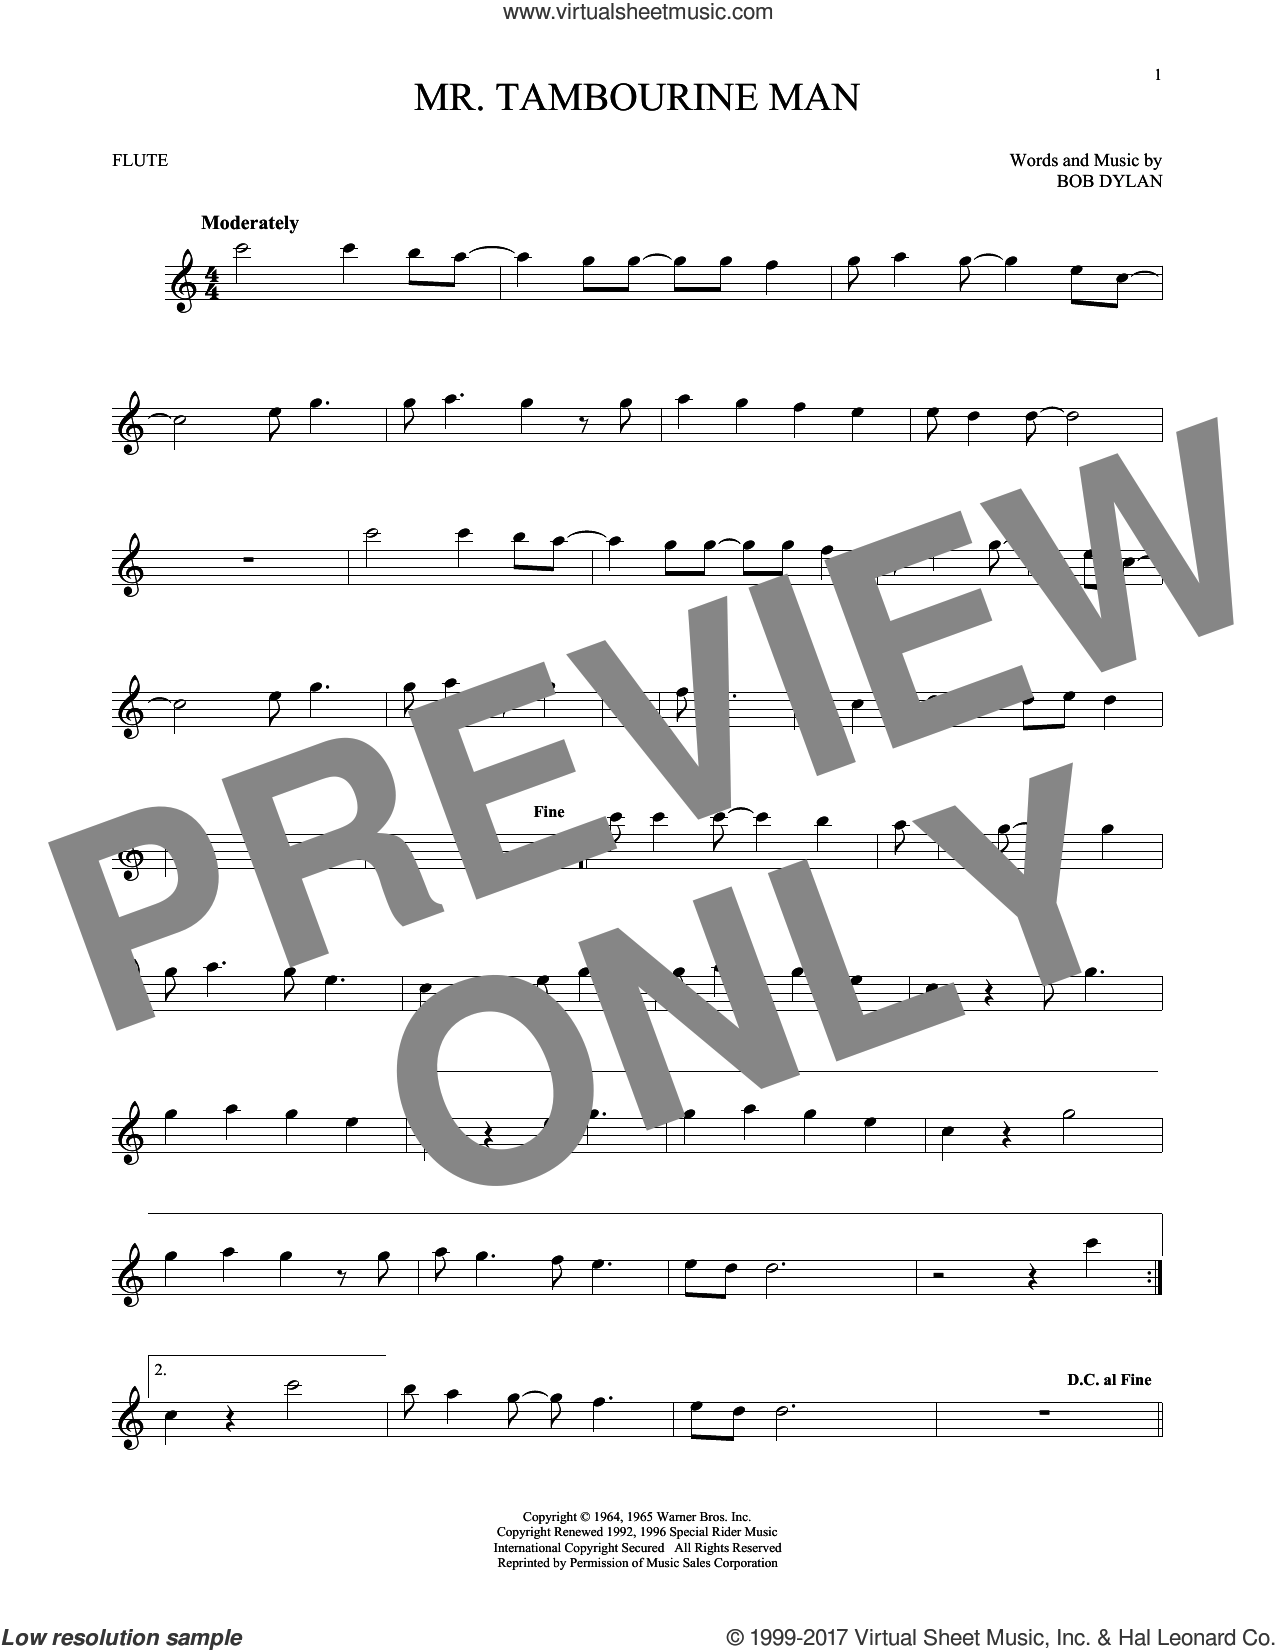 Mr. Tambourine Man sheet music for flute solo by Bob Dylan, intermediate skill level